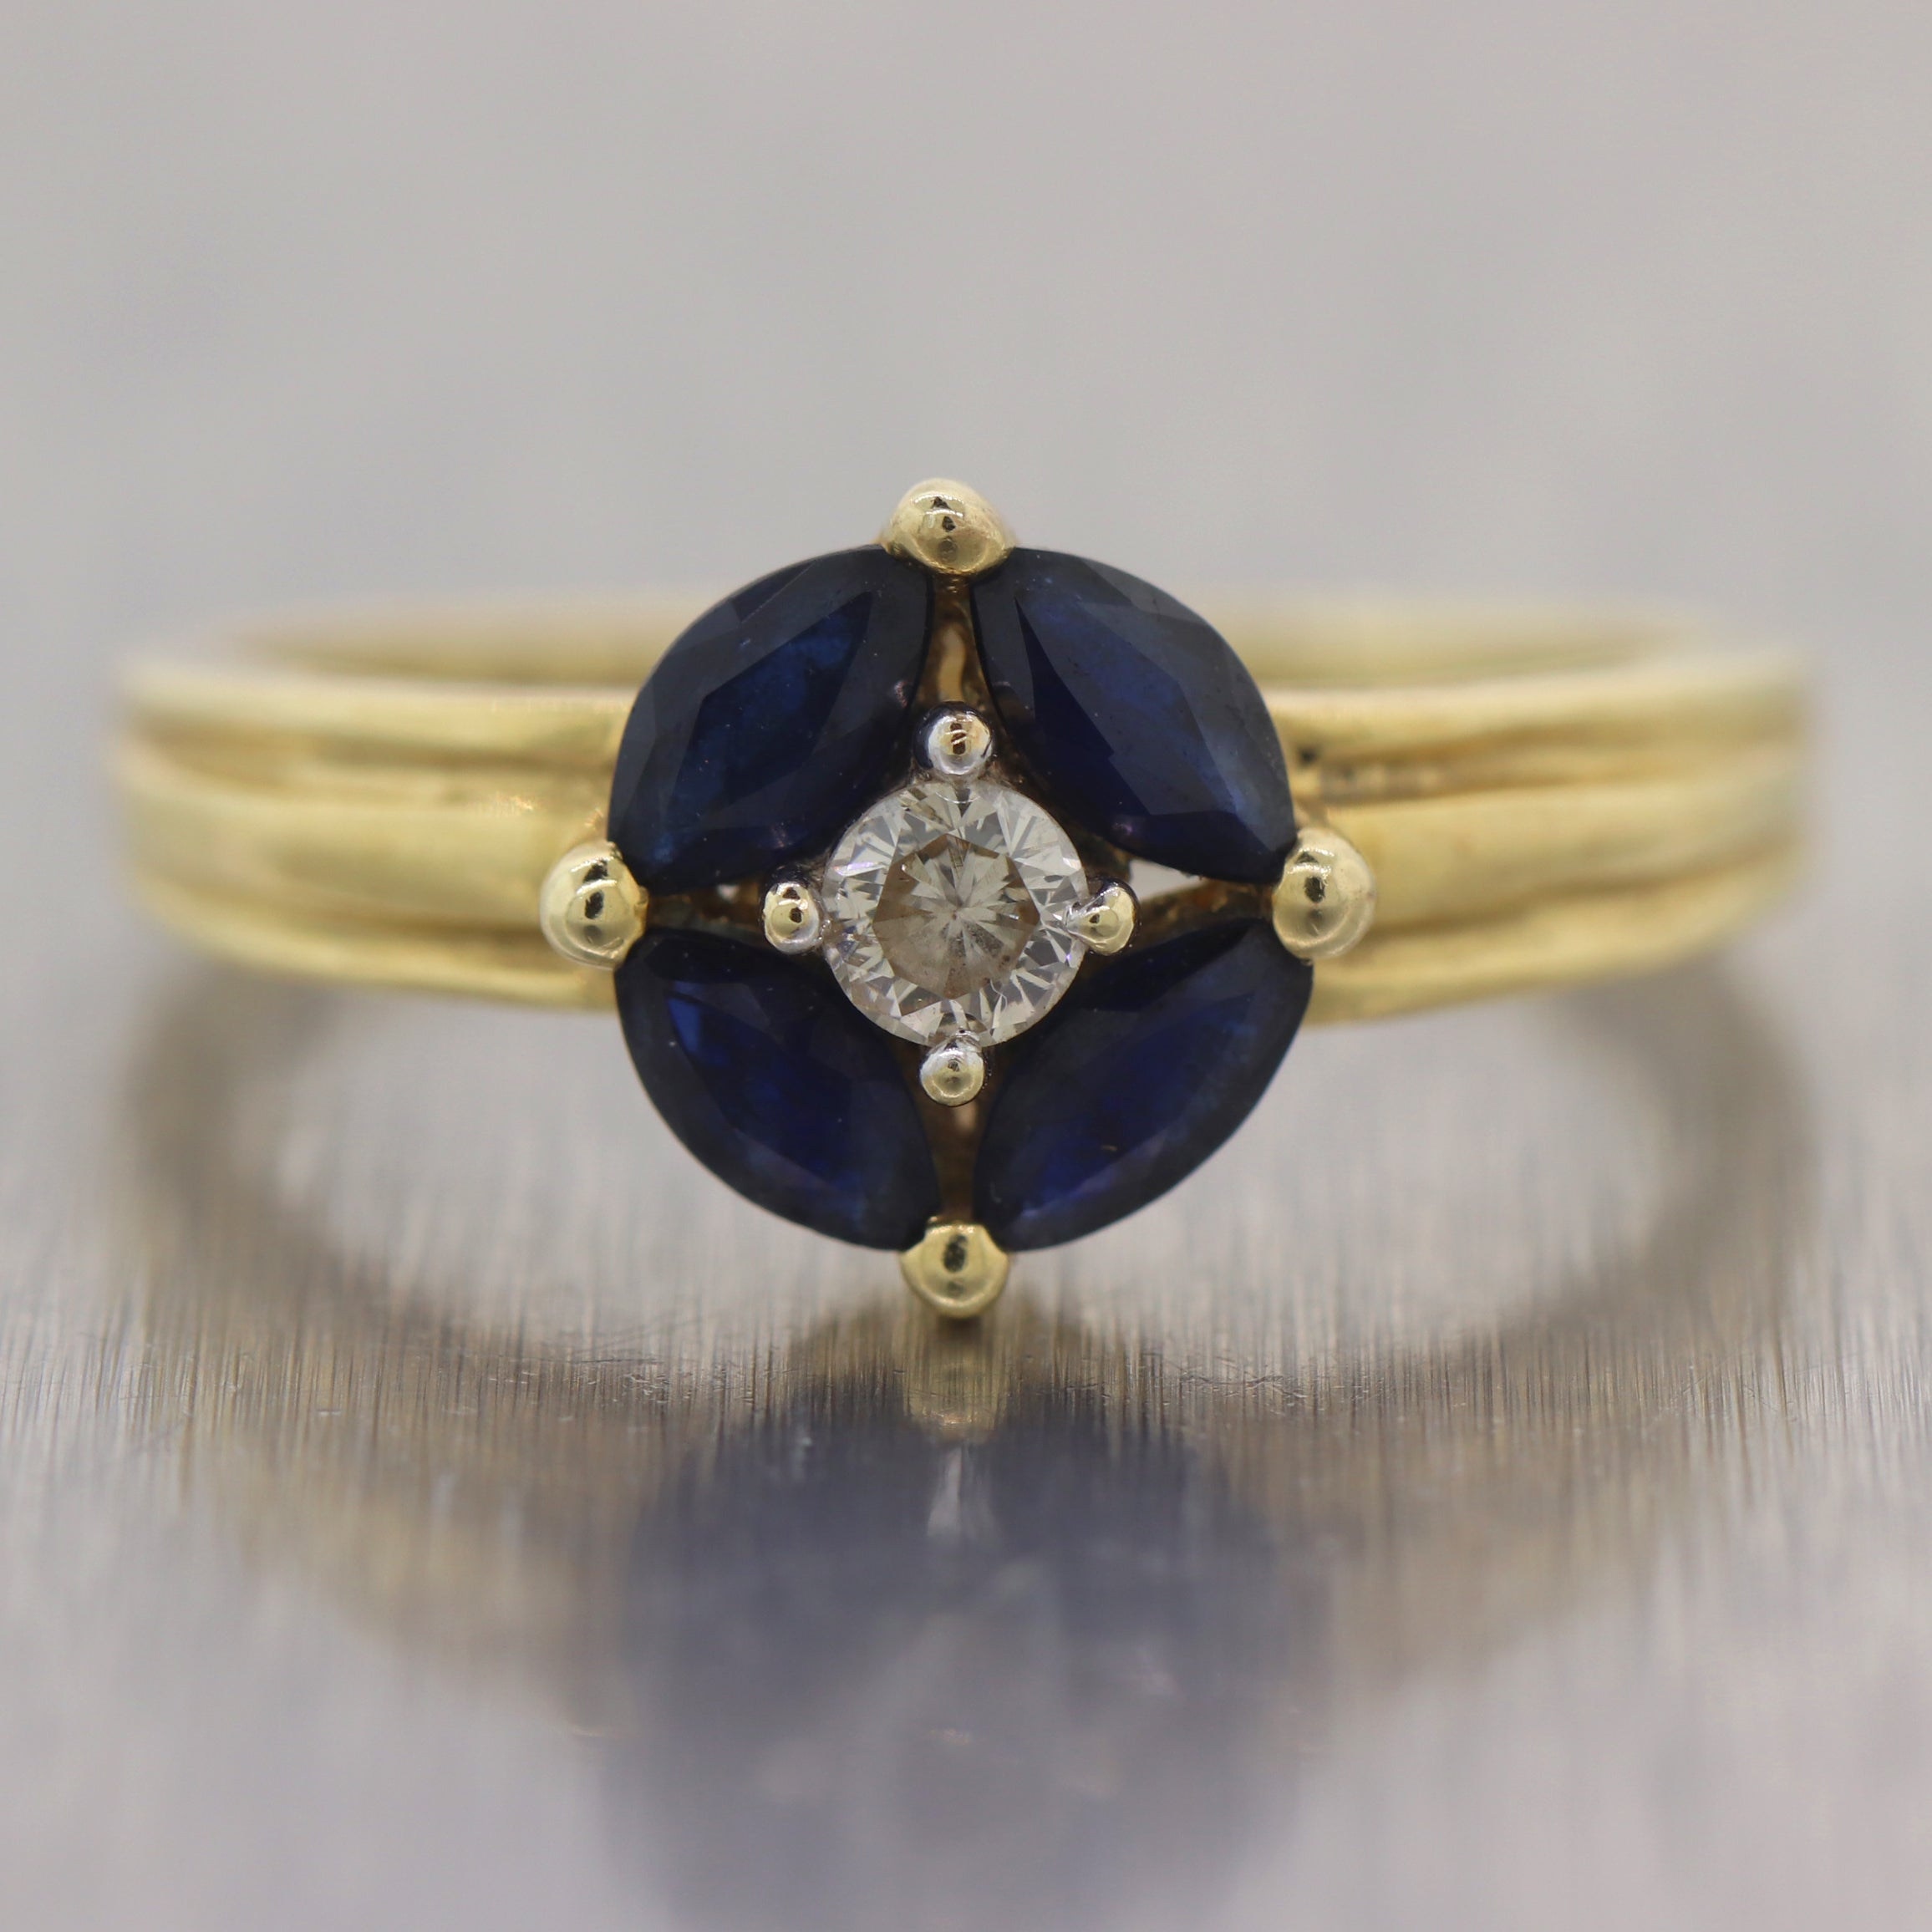 Vintage Estate 14k Yellow Gold 0.50ctw Diamond & Sapphire Ring